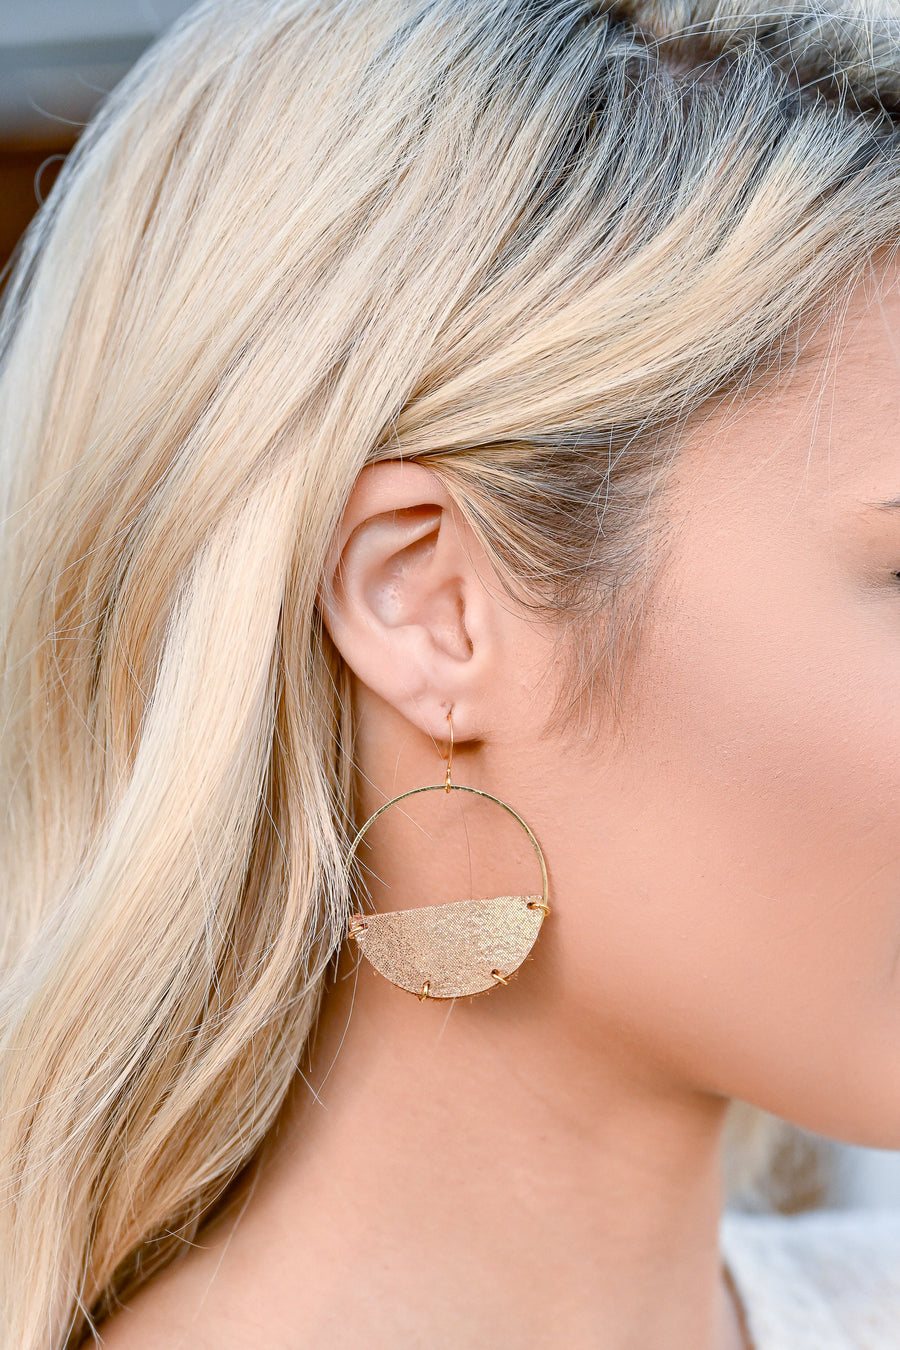 Keeping It Fun Earrings - Gold Glimmer womens trendy half circle dangle earrings closet candy side